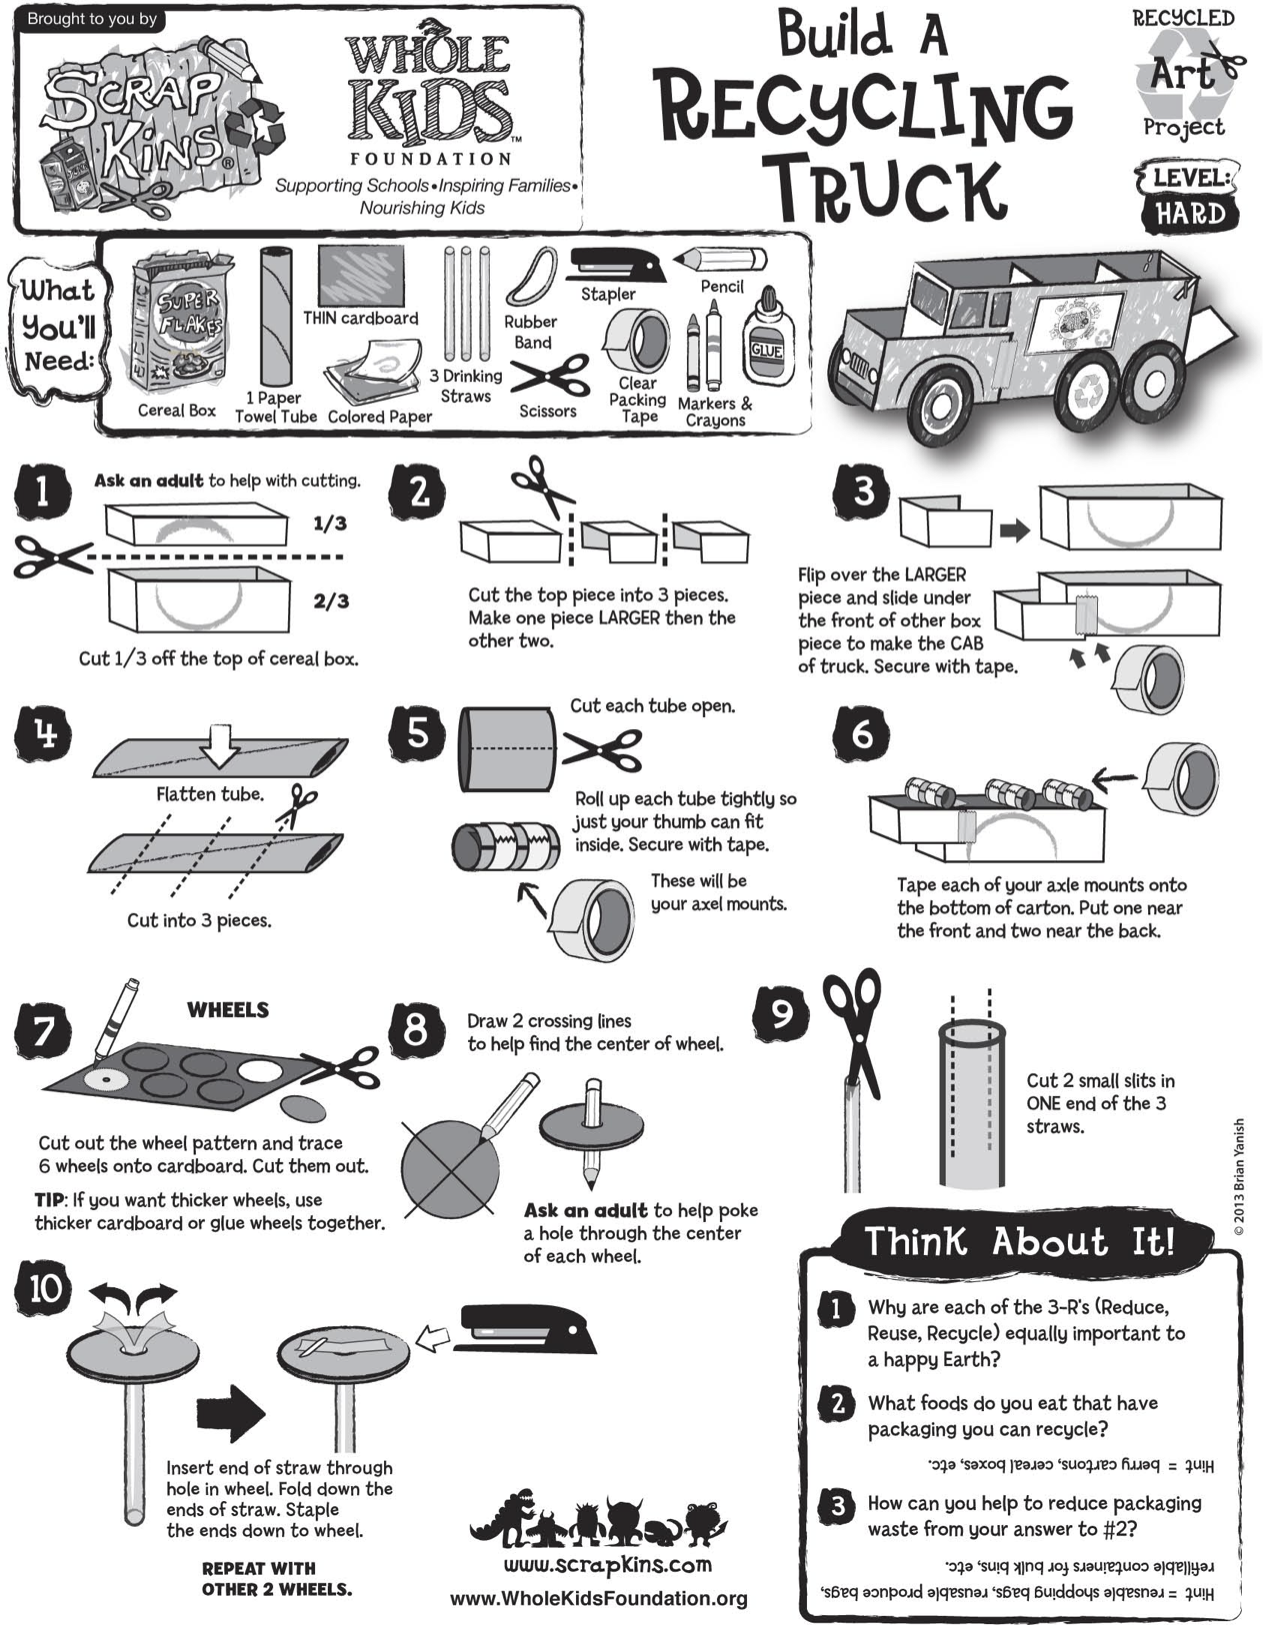 Build A Recycling Truck With Recycled Materials Scrapkins Recycle Activities Kids